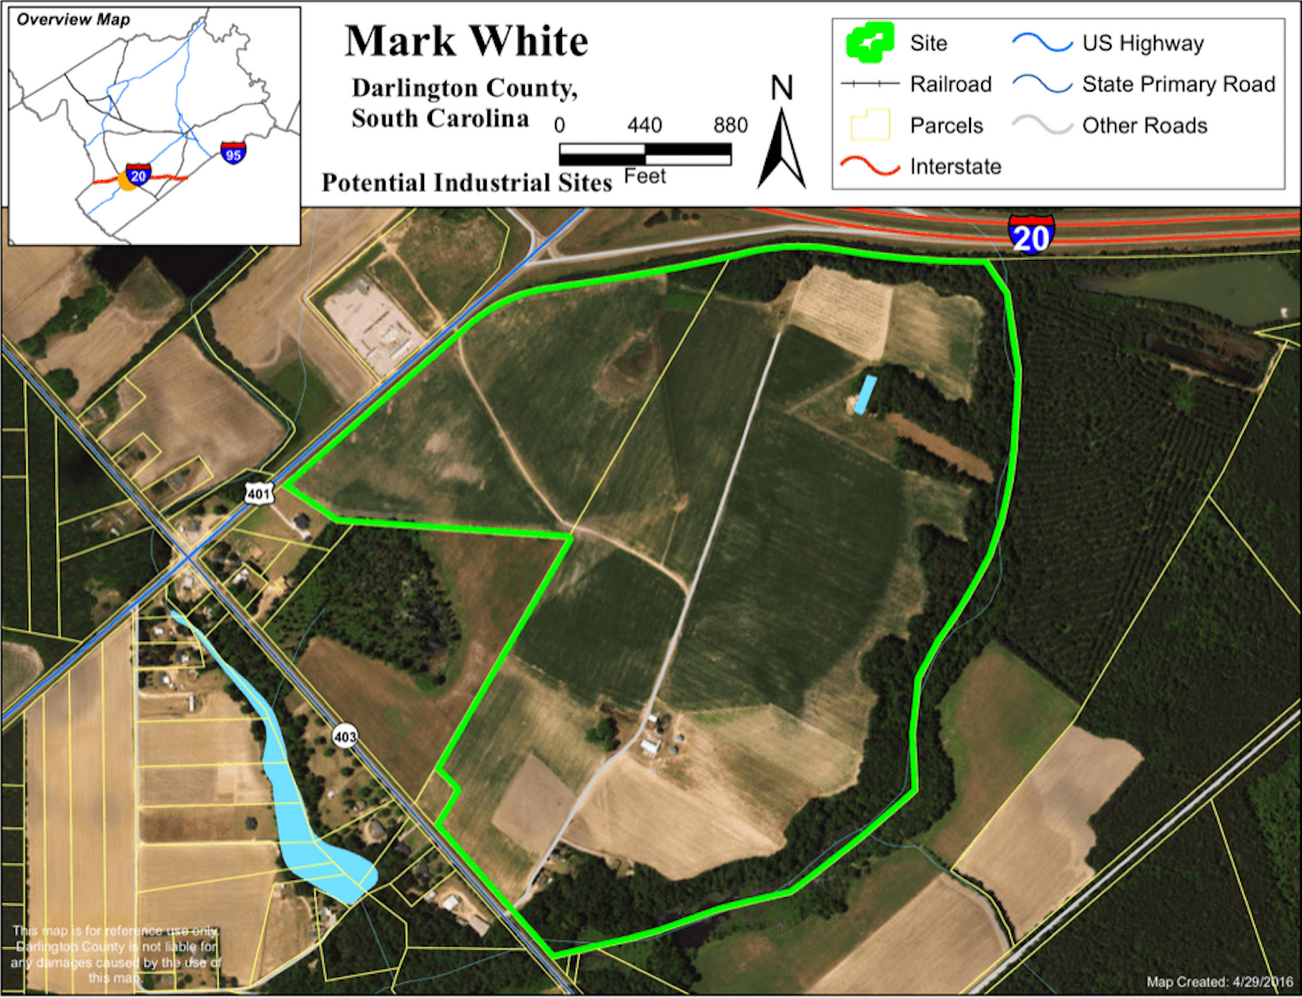 Mark White Site